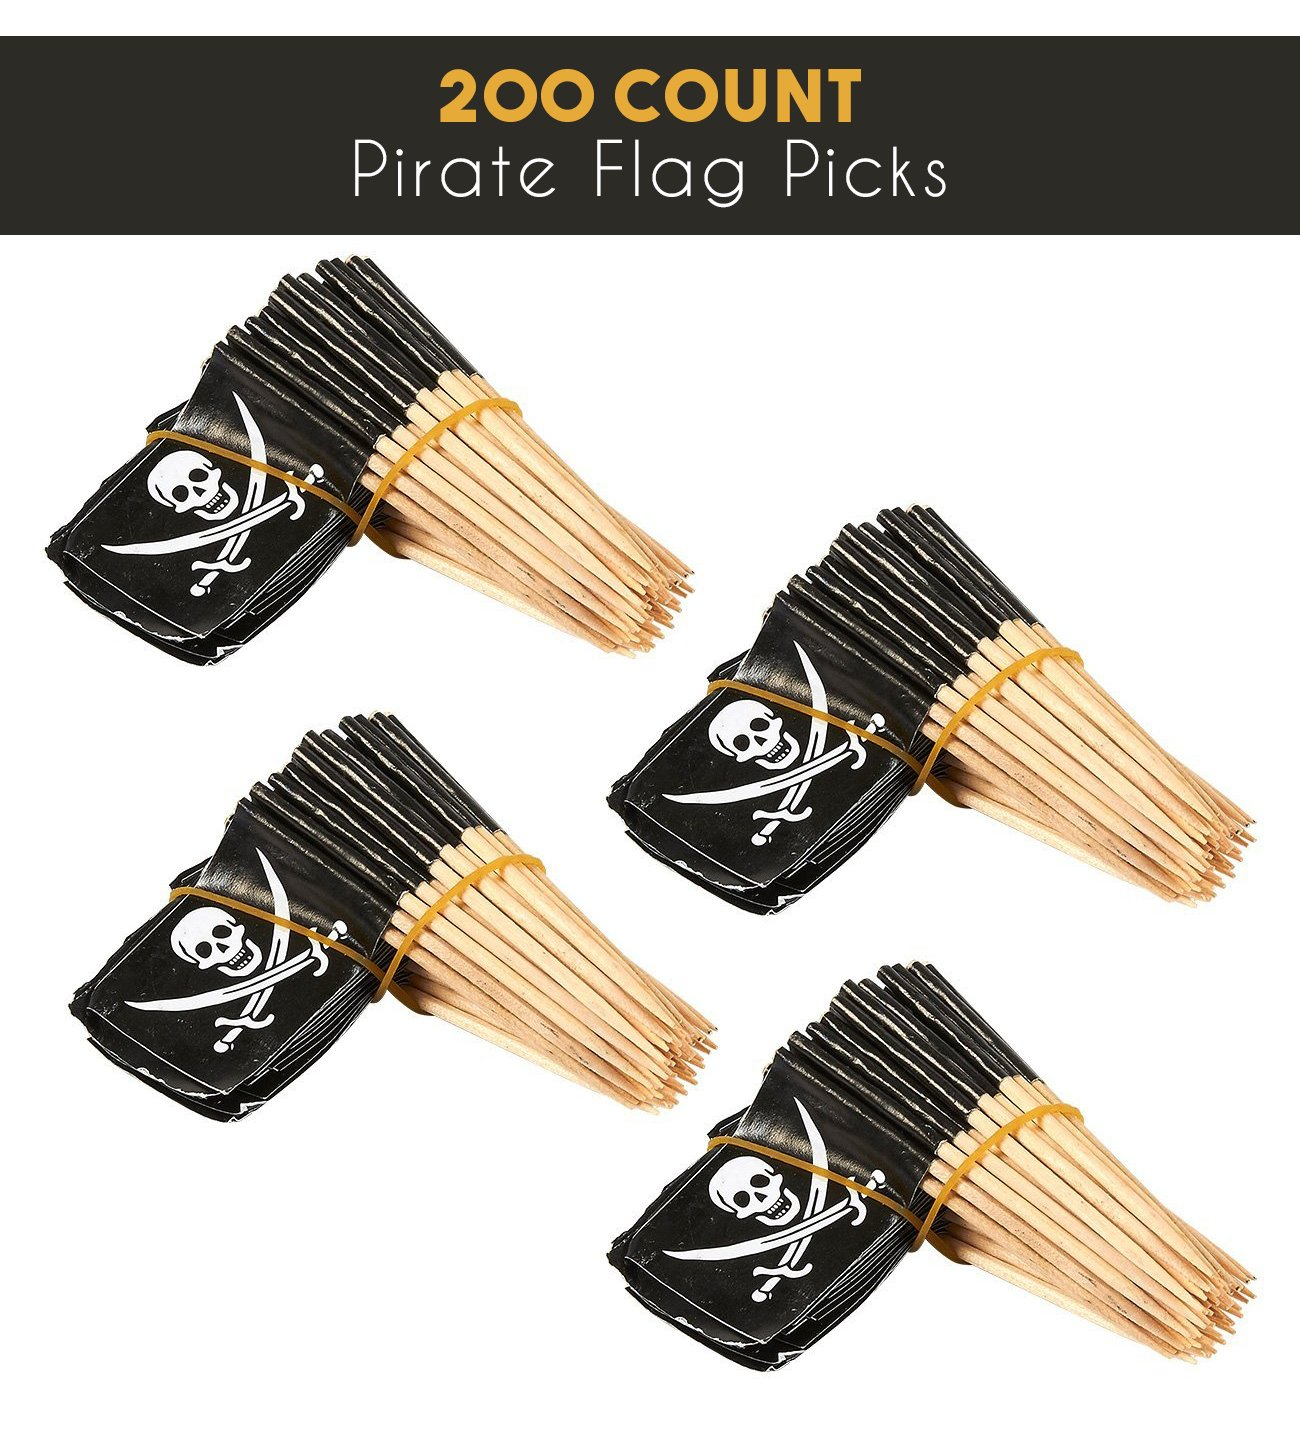 Cupcake Decoration for Kids Parties Cocktail Appetizer 200 Count Pirate Flag Picks Party Cocktail Toothpicks for Food 2.5 x 1.375 Inches Juvale